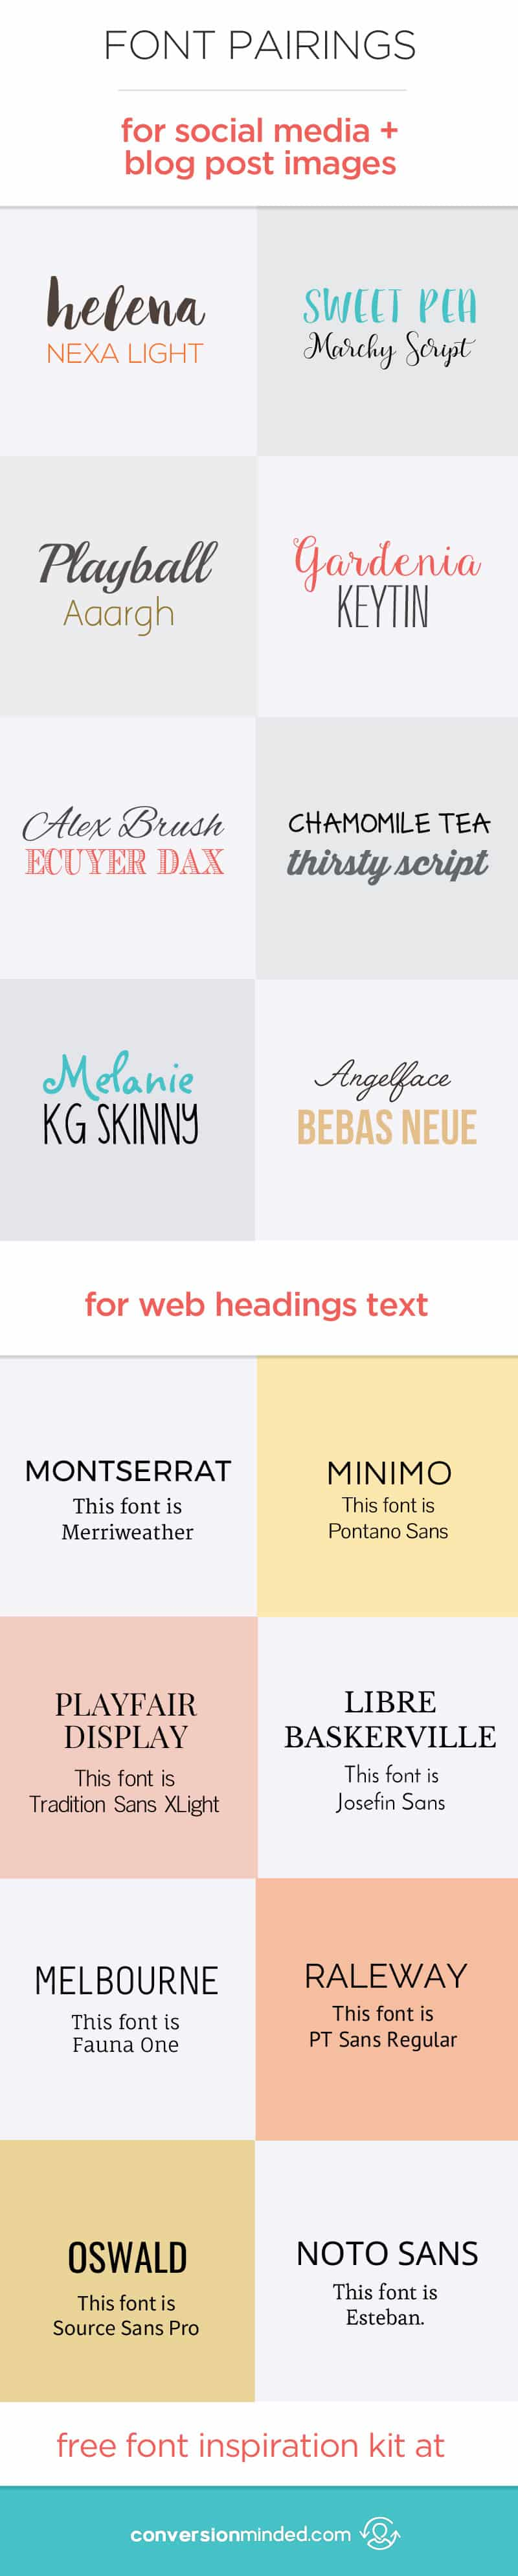 Font Pairings for the Web, Social Media and Blog Images! Plus, a FREE downloadable font inspiration kit to experiment with! Click through to see all the free fonts!